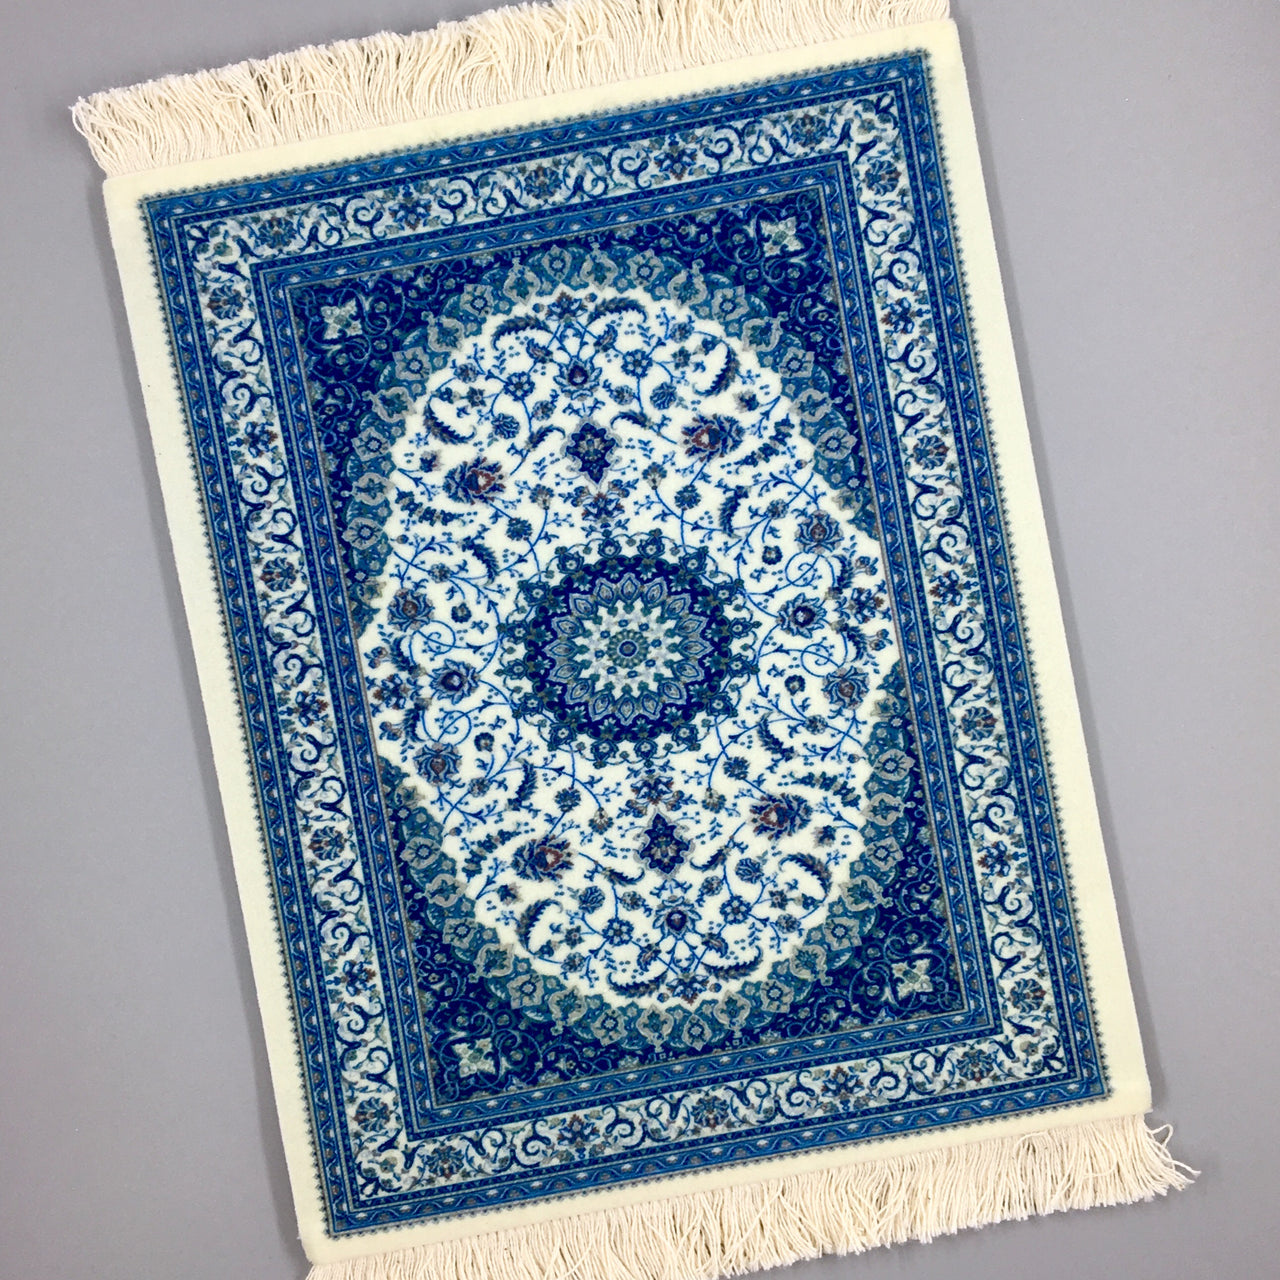 velvet persian rug mouse pad with fringe in blue